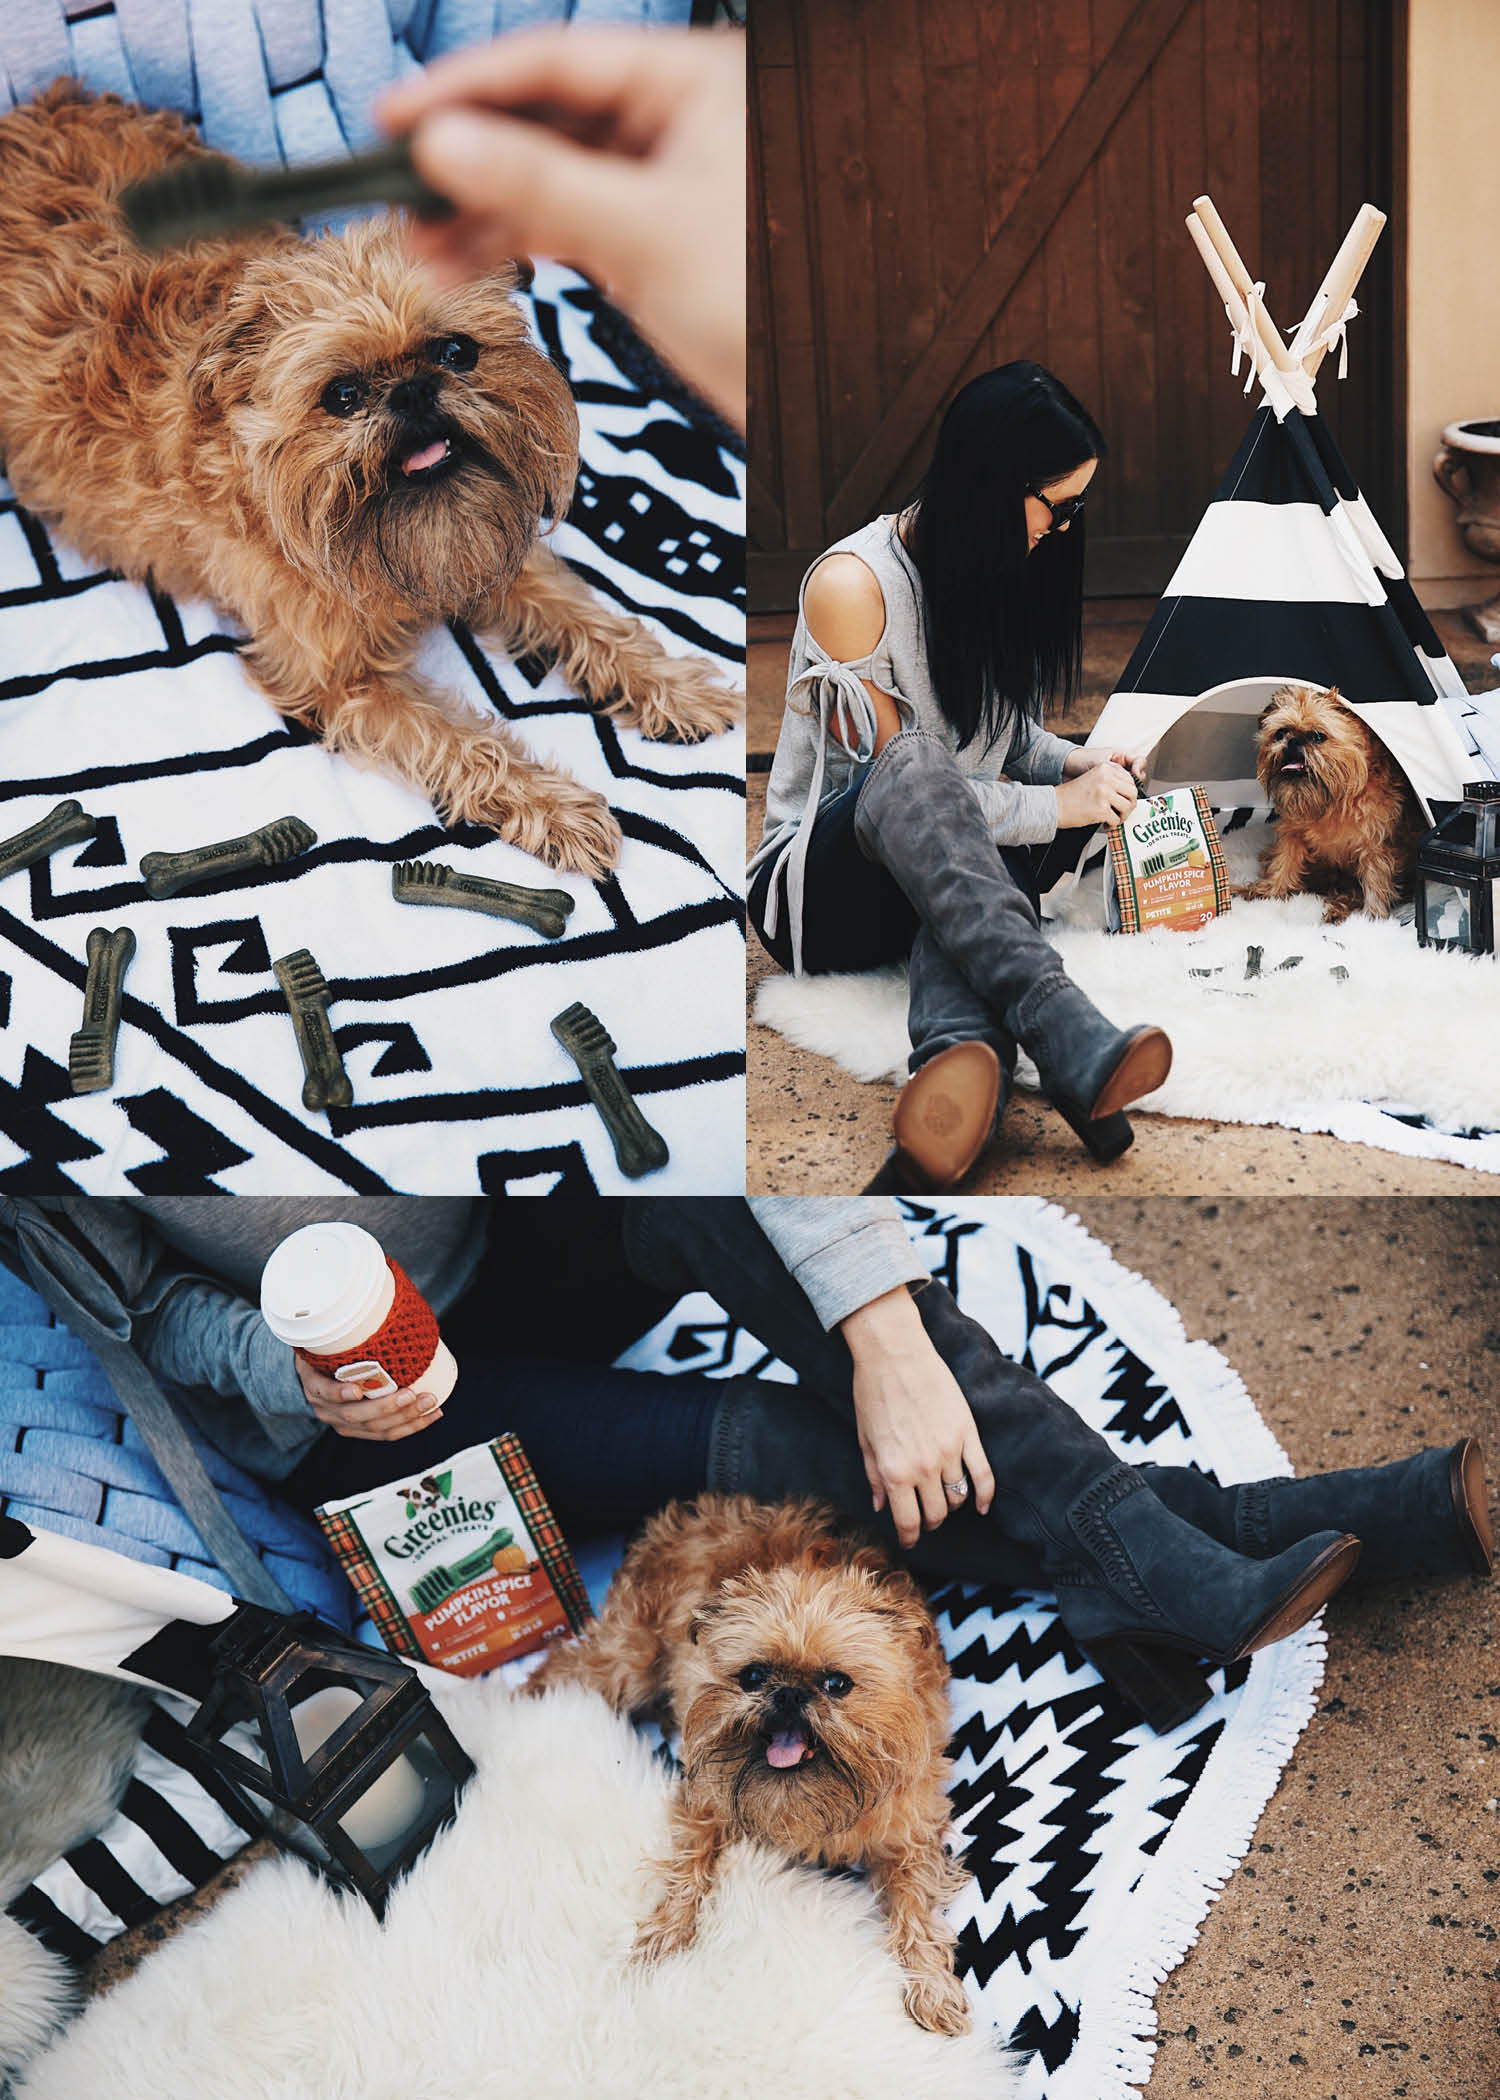 DTKAustin is sharing her Brussels Griffon, Steven Jalapeno's favorite Greenies Pumpkin Spice Dental Chews plus a giveaway for free dog treats! | dental dod chews | dog treats | #greenies #greeniesPumpkinSpice || DTKAustin